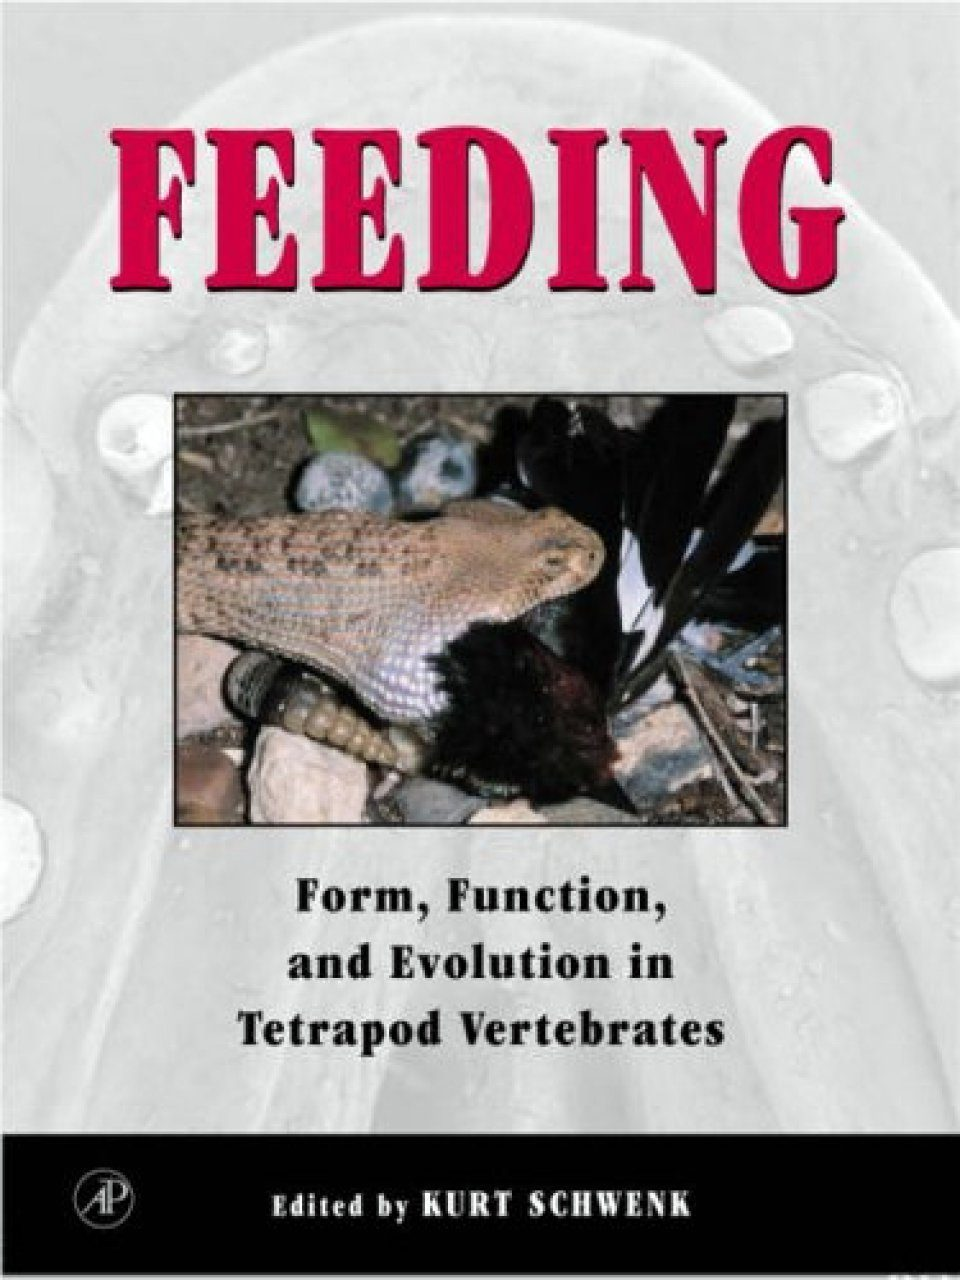 Feeding: Form, Function, and Evolution in Tetrapod Vertebrates